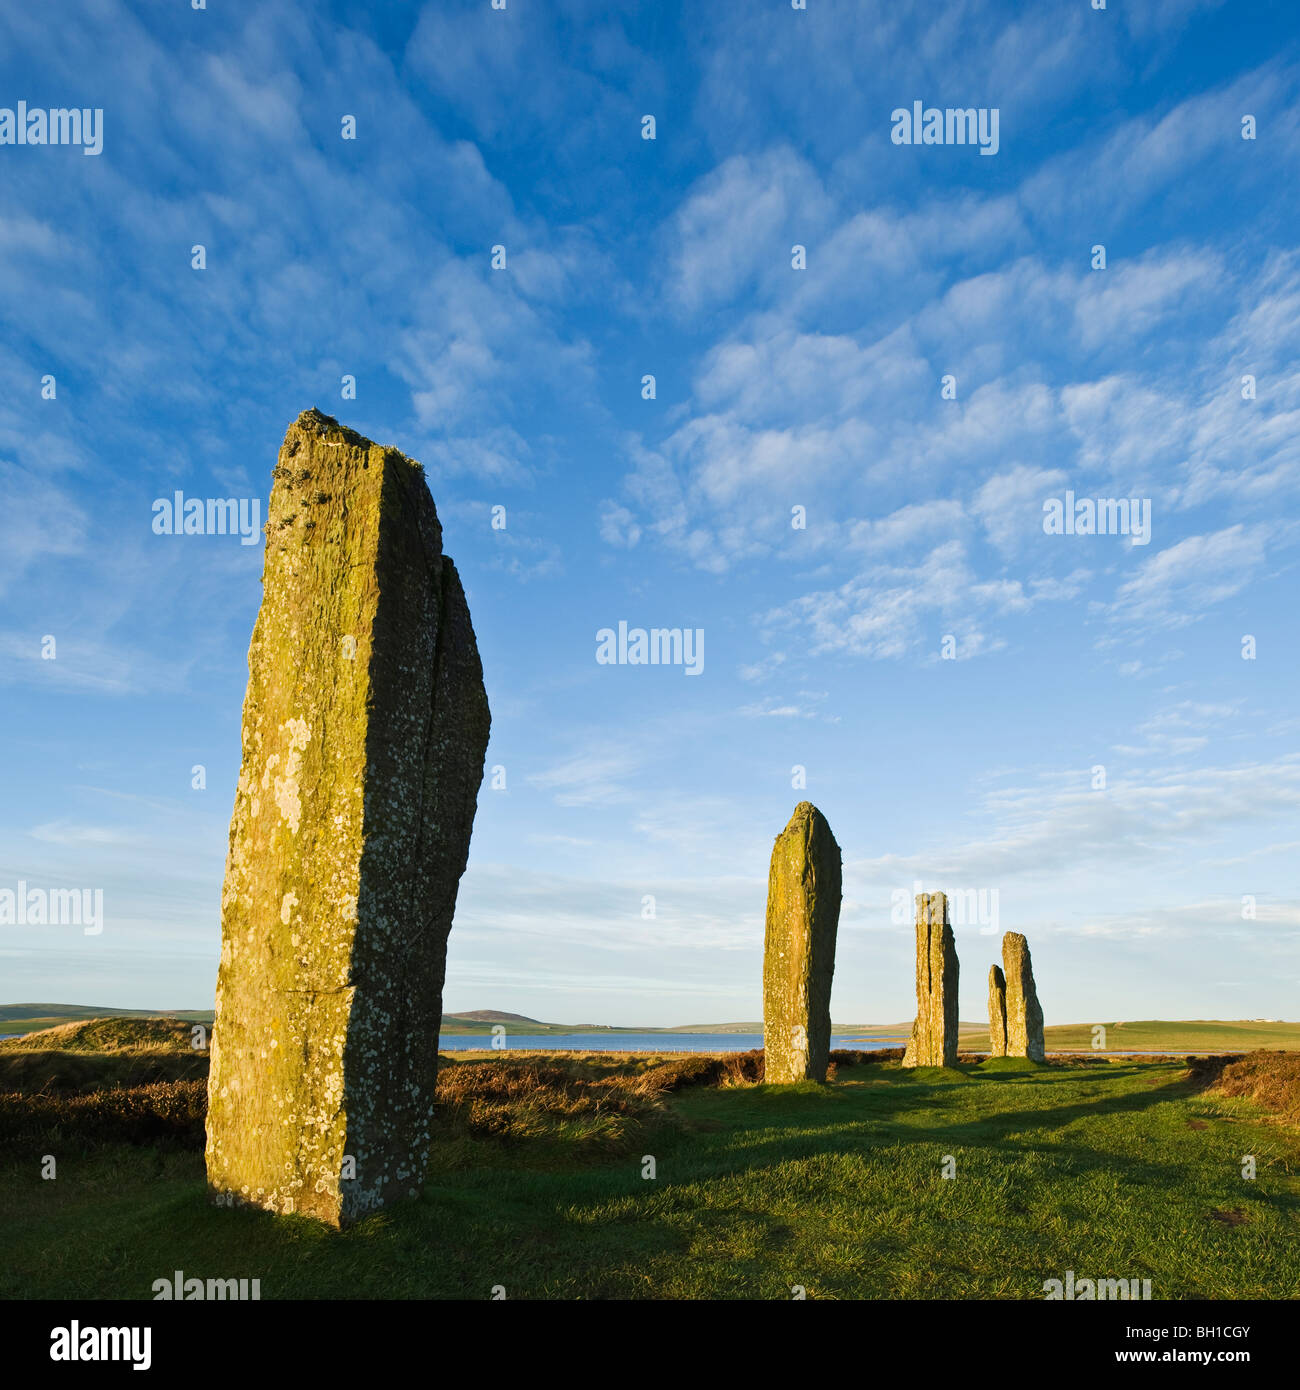 Ring of Brodgar standing stones, Orkney, Scotland - Stock Image